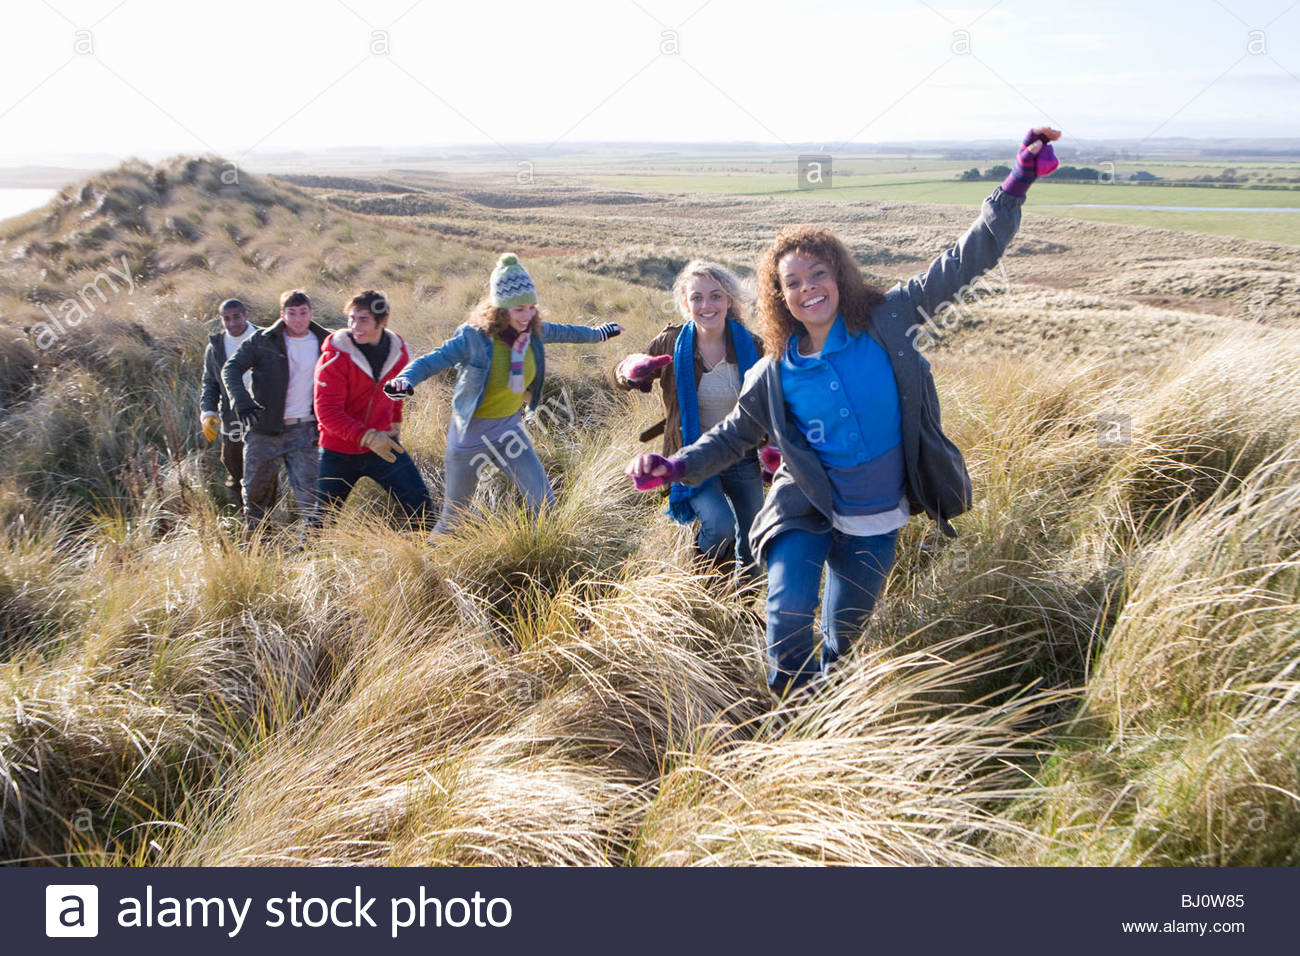 Friends walking on sand dune - Stock Image